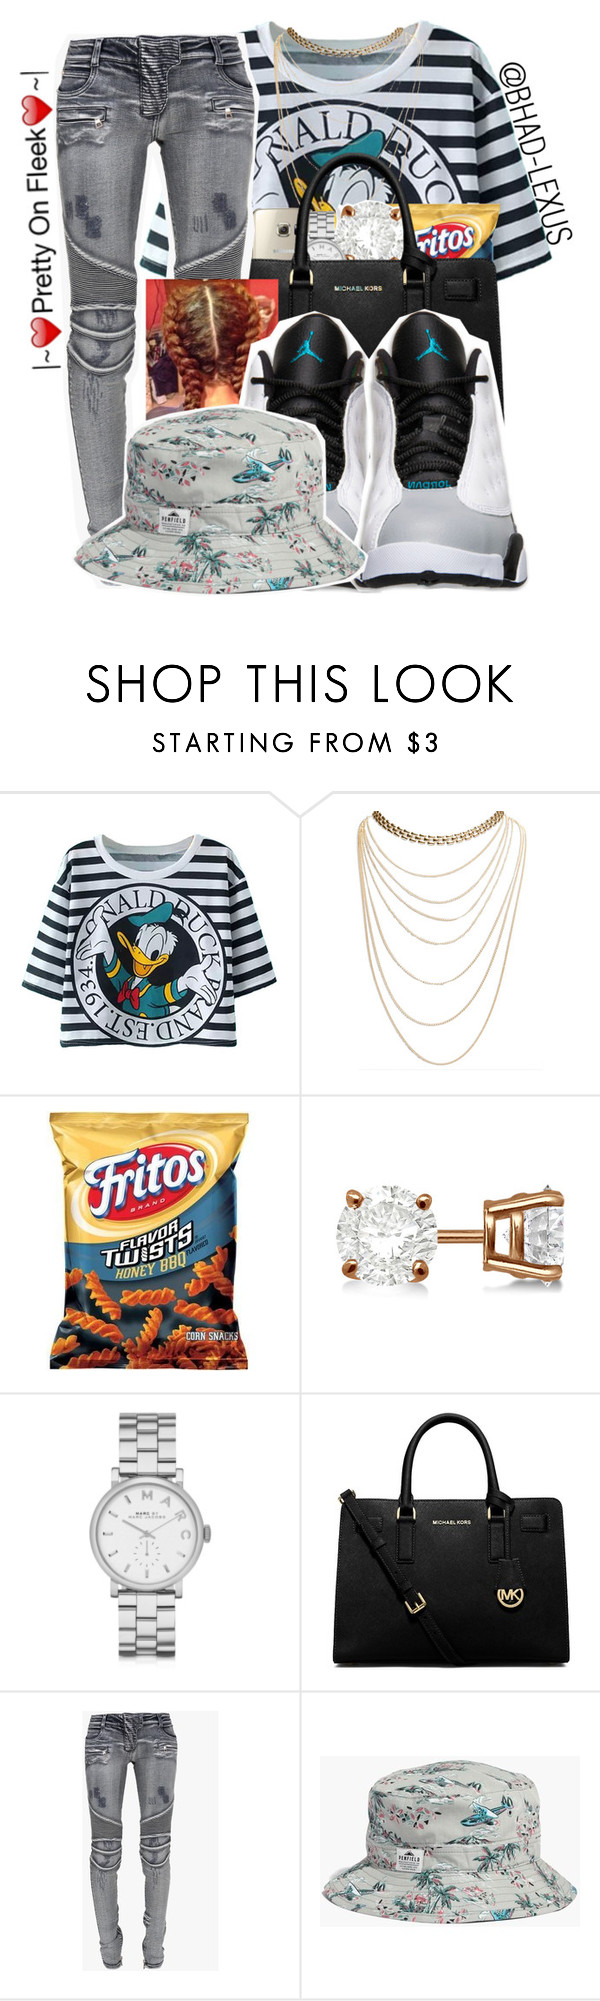 """""""Unknown#166 """" by bhad-lexus ❤ liked on Polyvore featuring Wet Seal, Allurez, Marc by Marc Jacobs, MICHAEL Michael Kors, Balmain, Retrò, Madewell, women's clothing, women and female"""